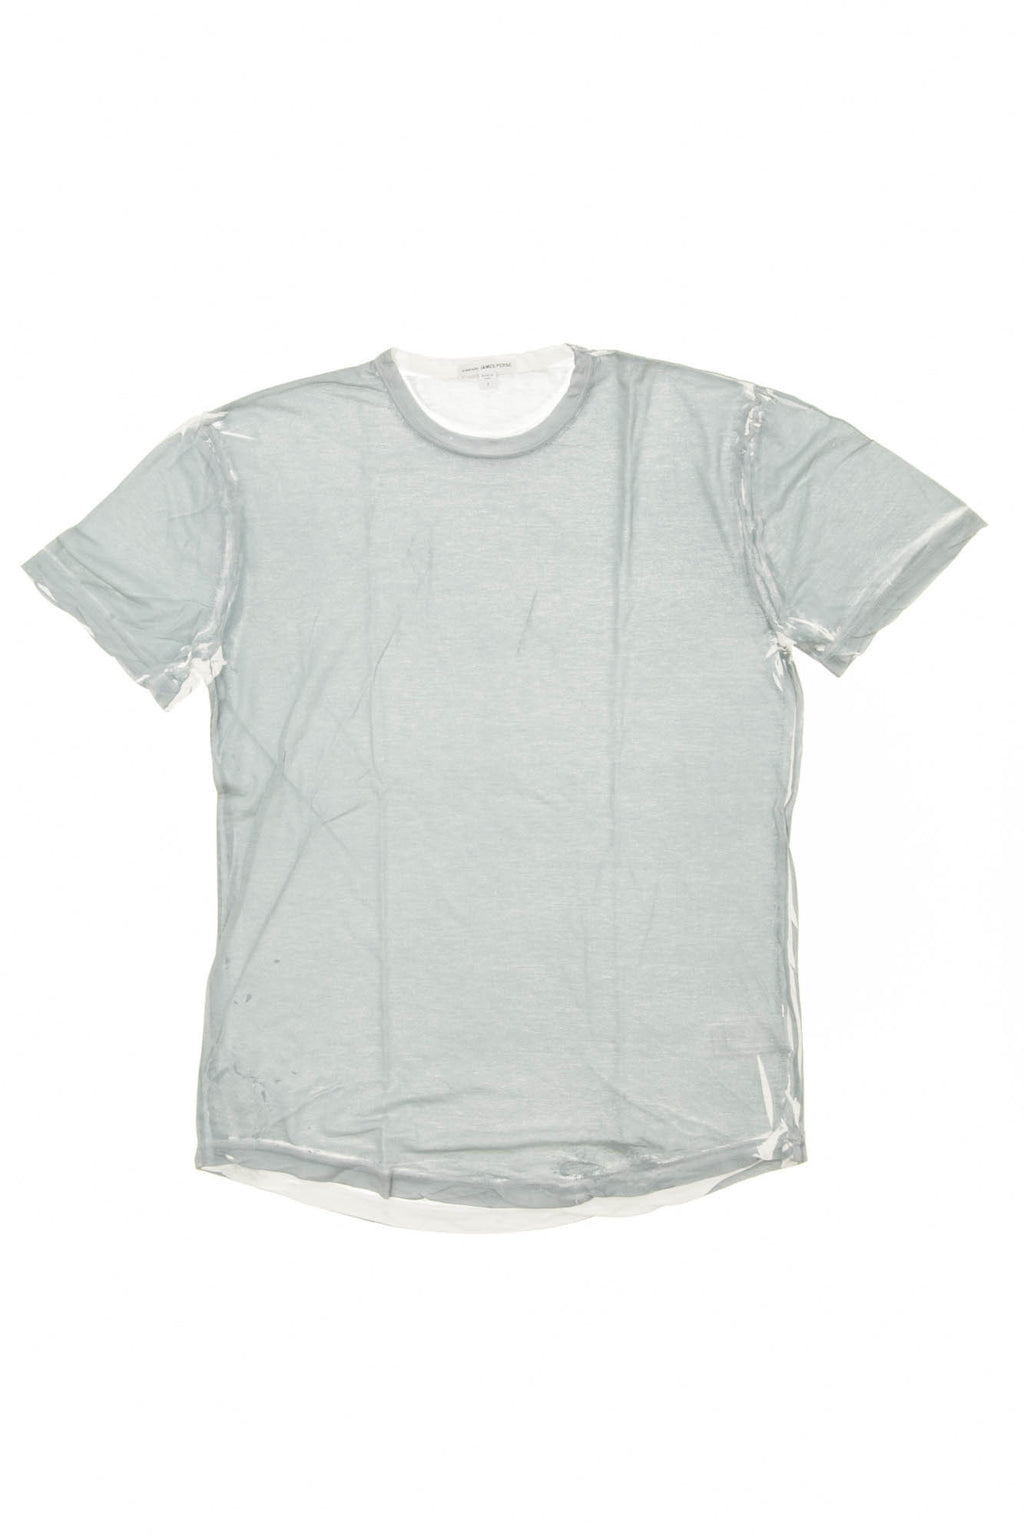 James Perse - Light Blue Short Sleeve TShirt - 1